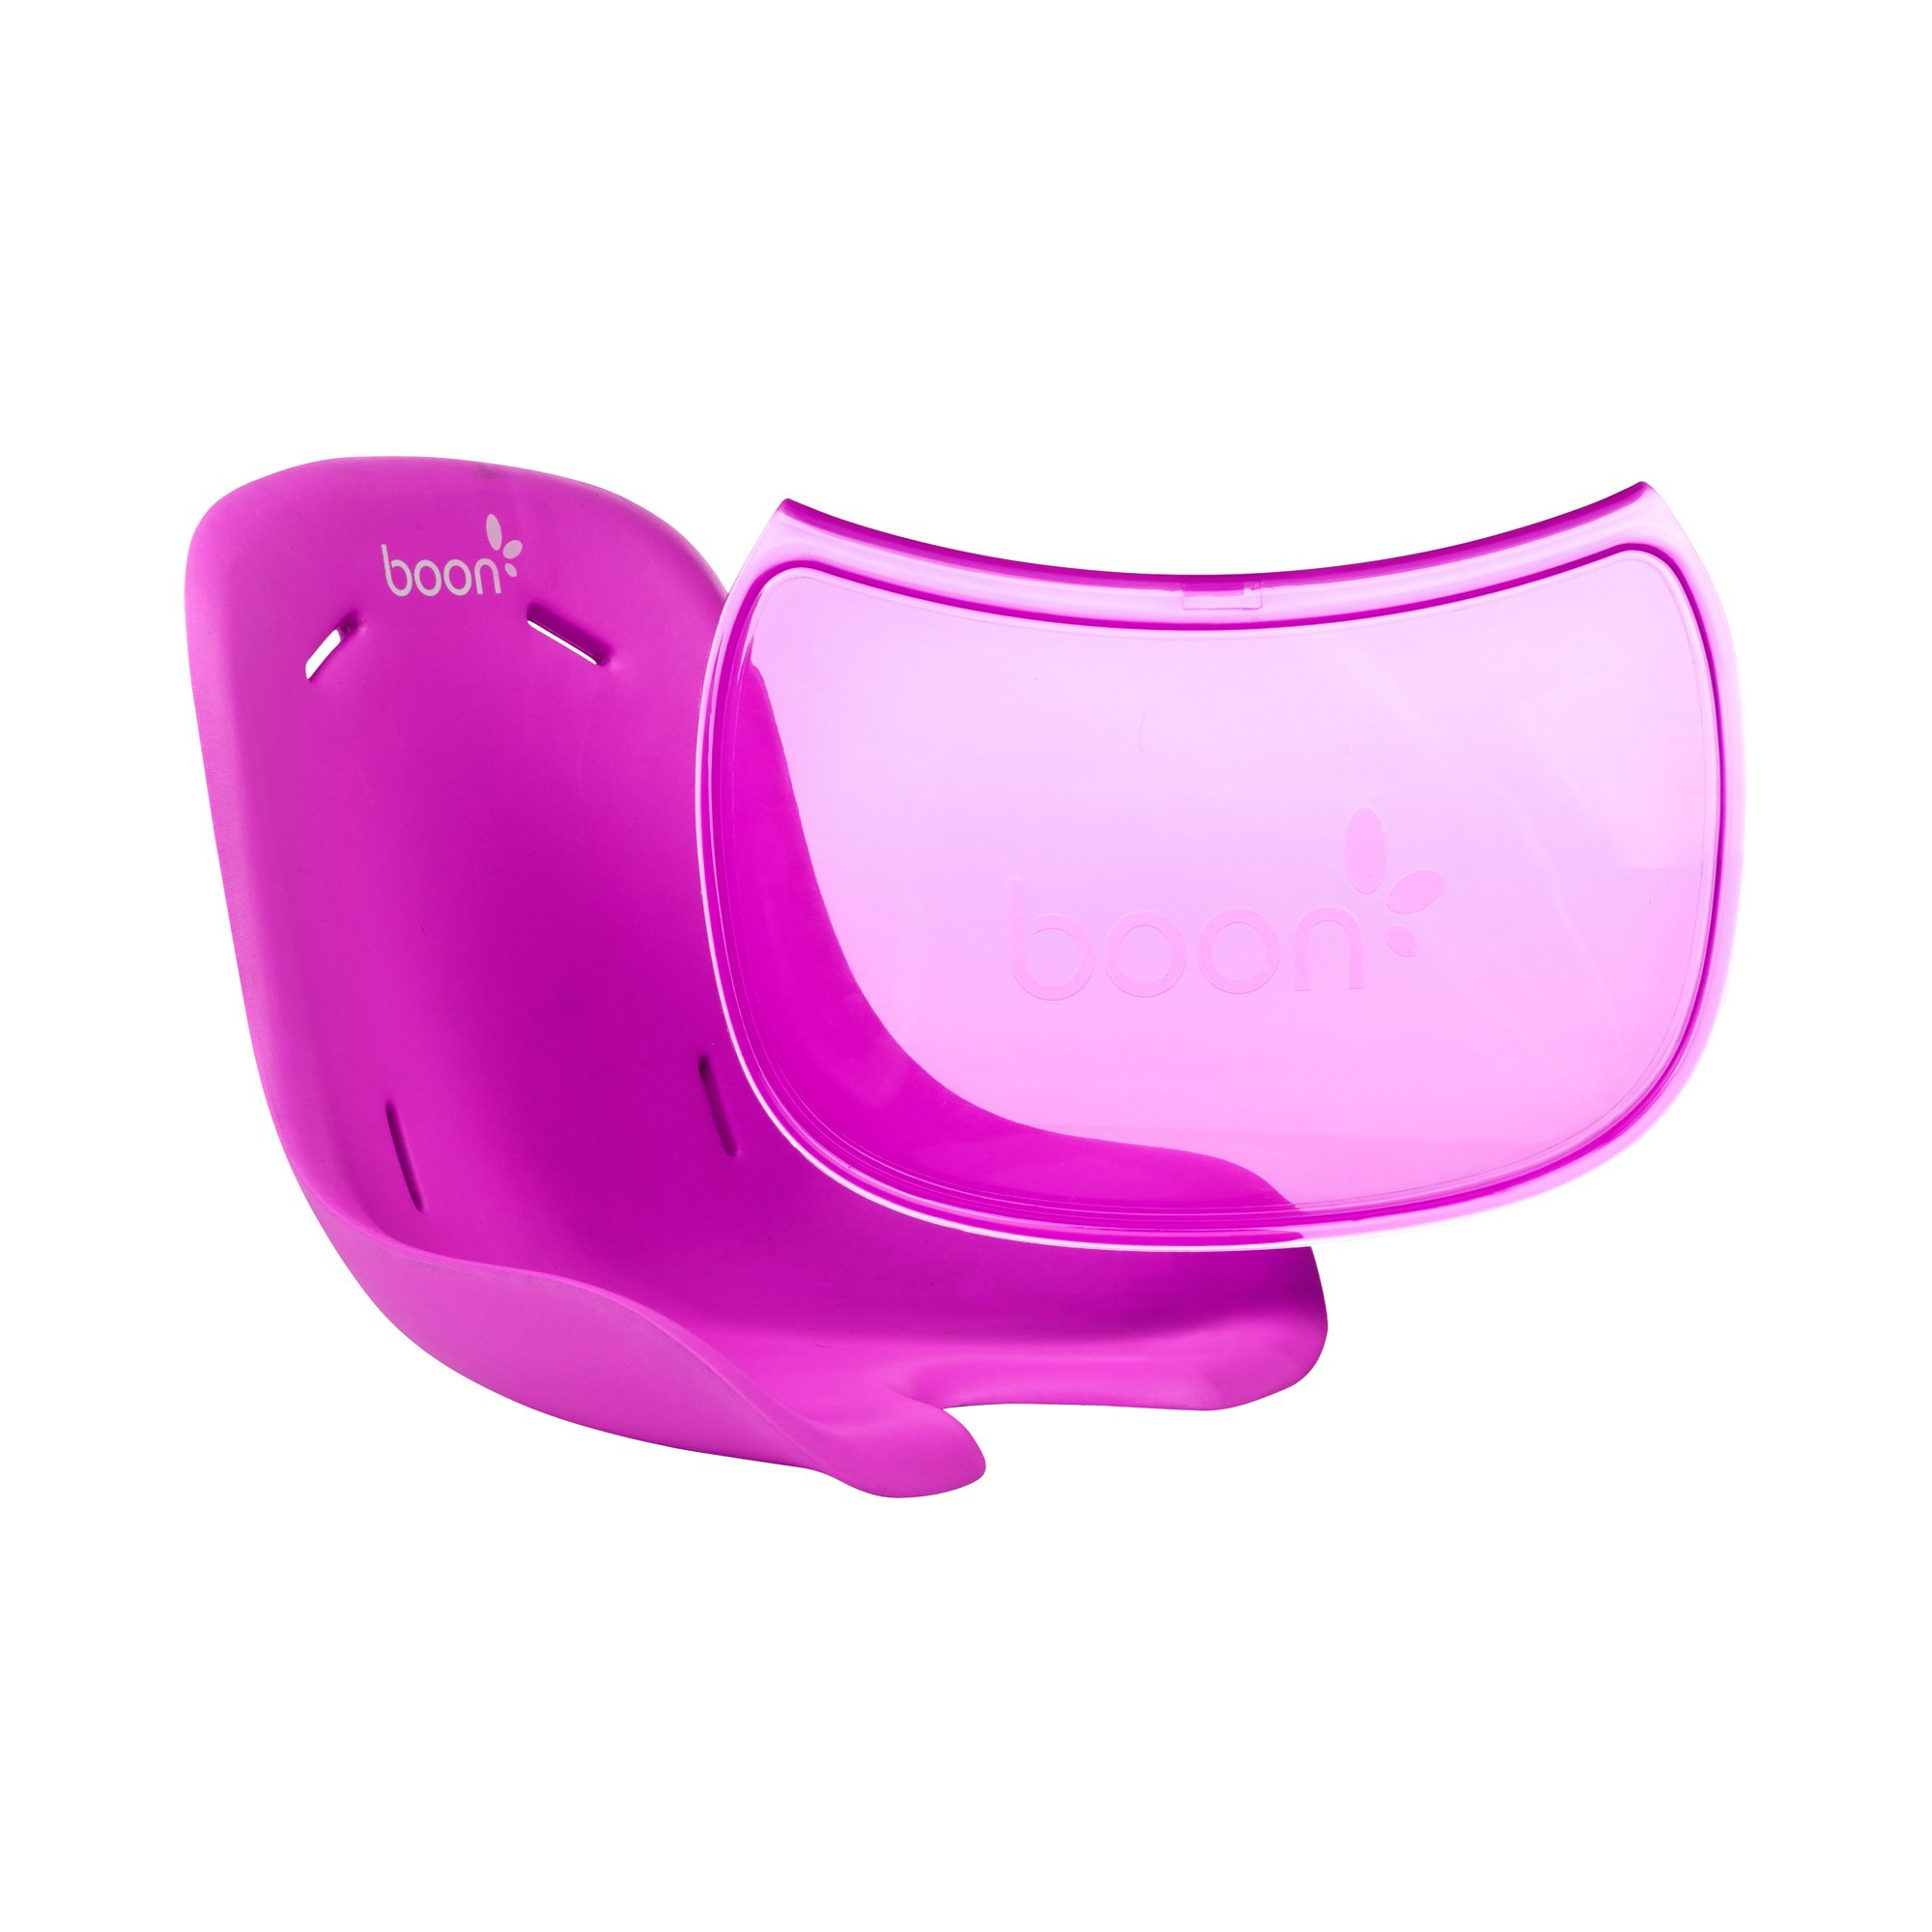 Boon Flair Chair Seat Pad Plus Tray Liner,Pink